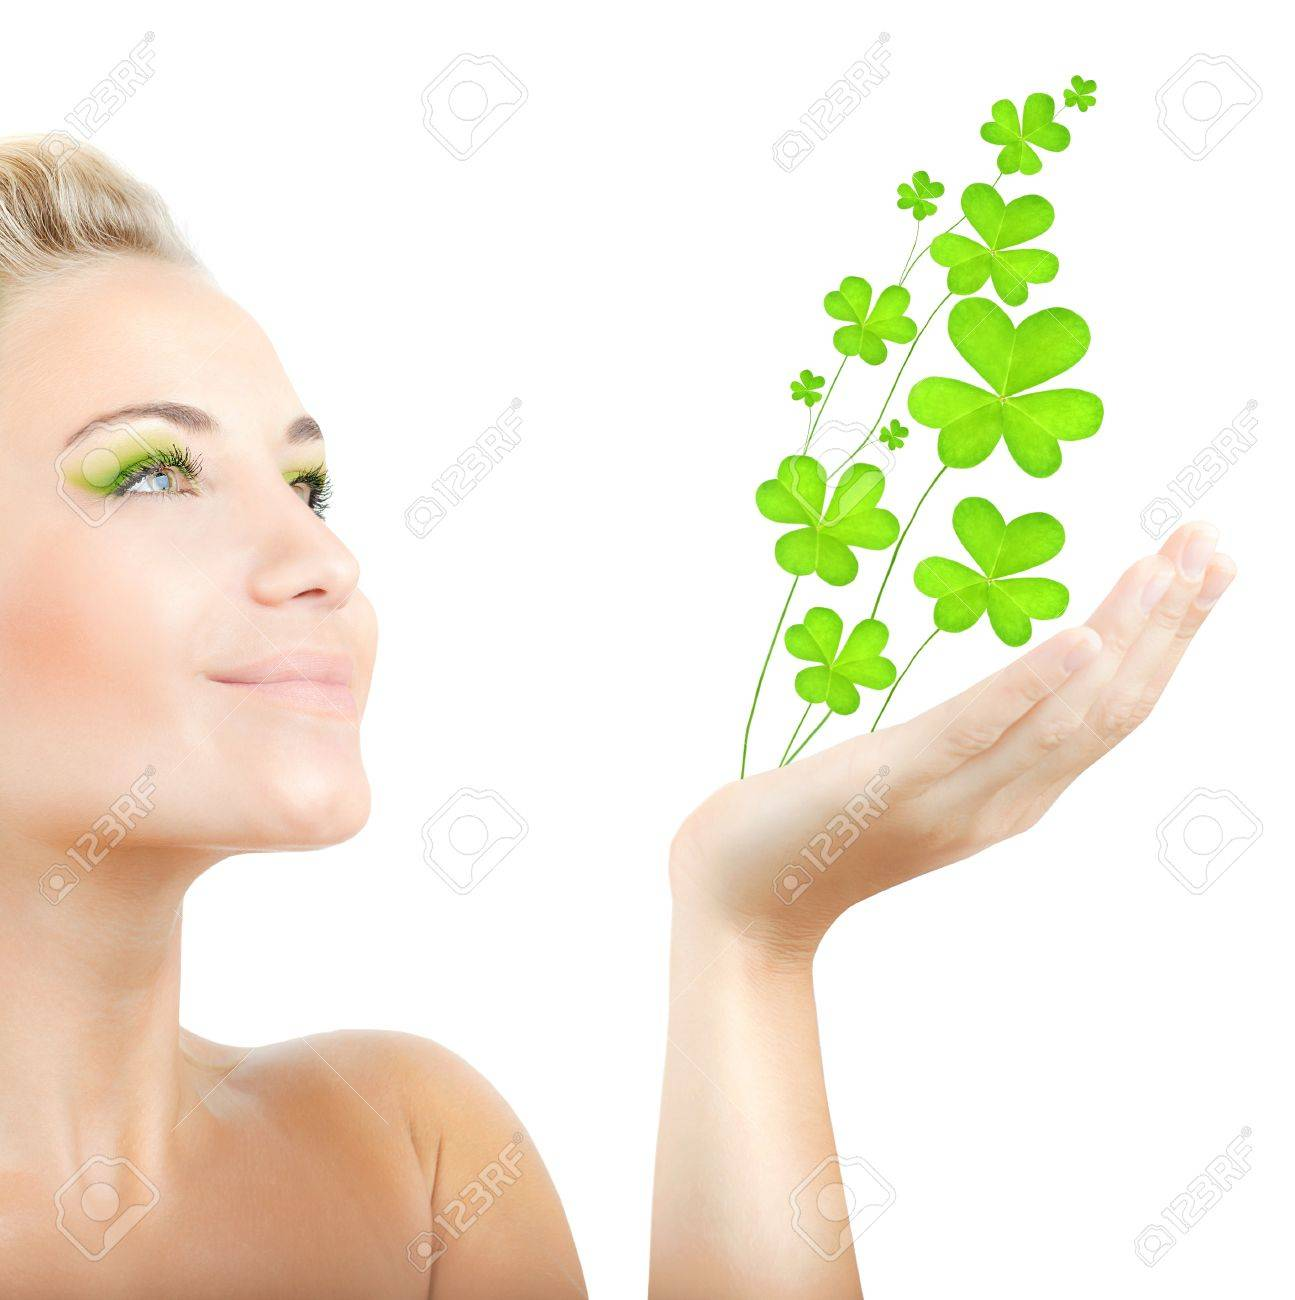 Beautiful woman holding fresh clover plant  in hand, sensual female portrait isolated on white background, cute girl with bright green makeup, st.Patrick's day holiday Stock Photo - 12589152